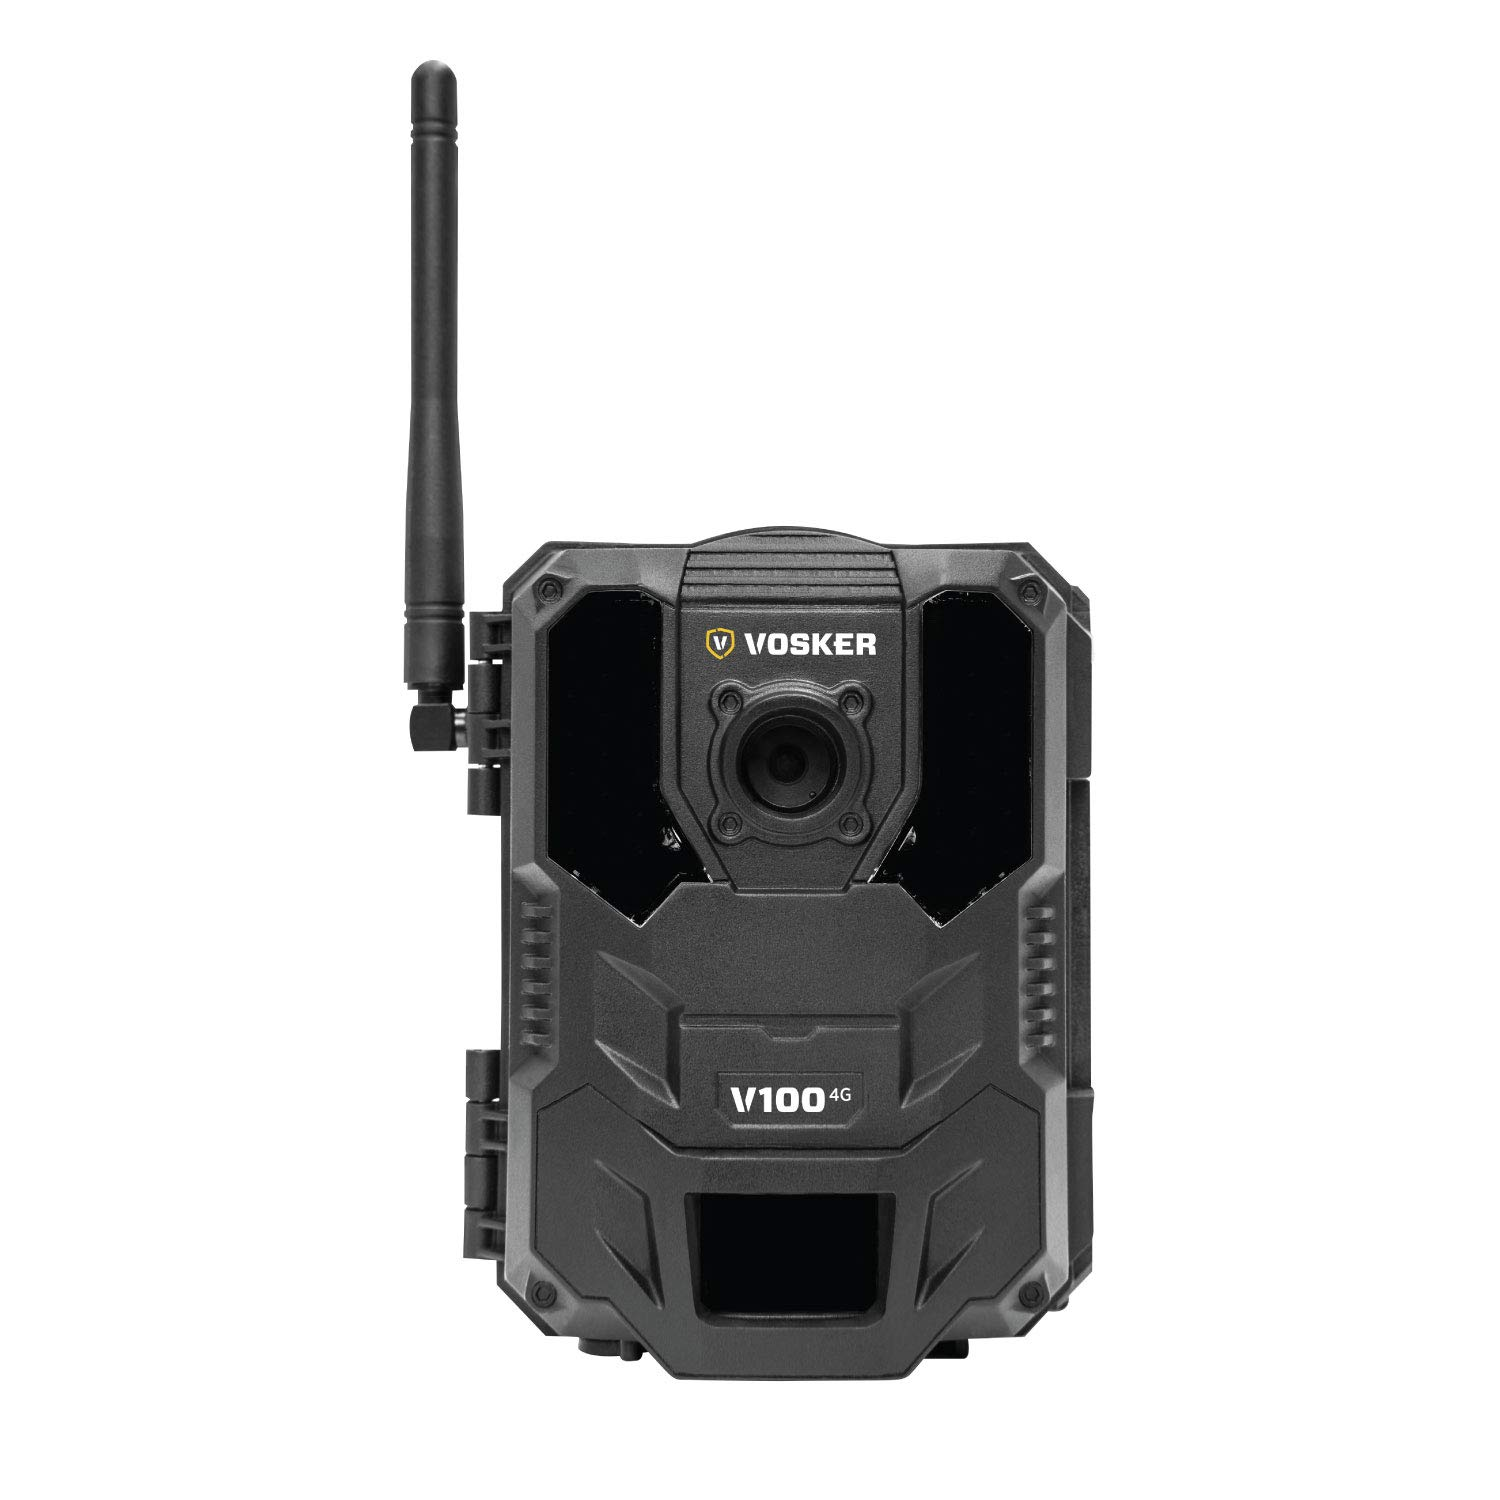 Vosker V100 4G Outdoor Security Camera (Wireless) Weatherproof Protection   No Wi-Fi Required   Battery Operated   Day and Night Vision Surveillance Camera   Free Data Plan Available by Vosker